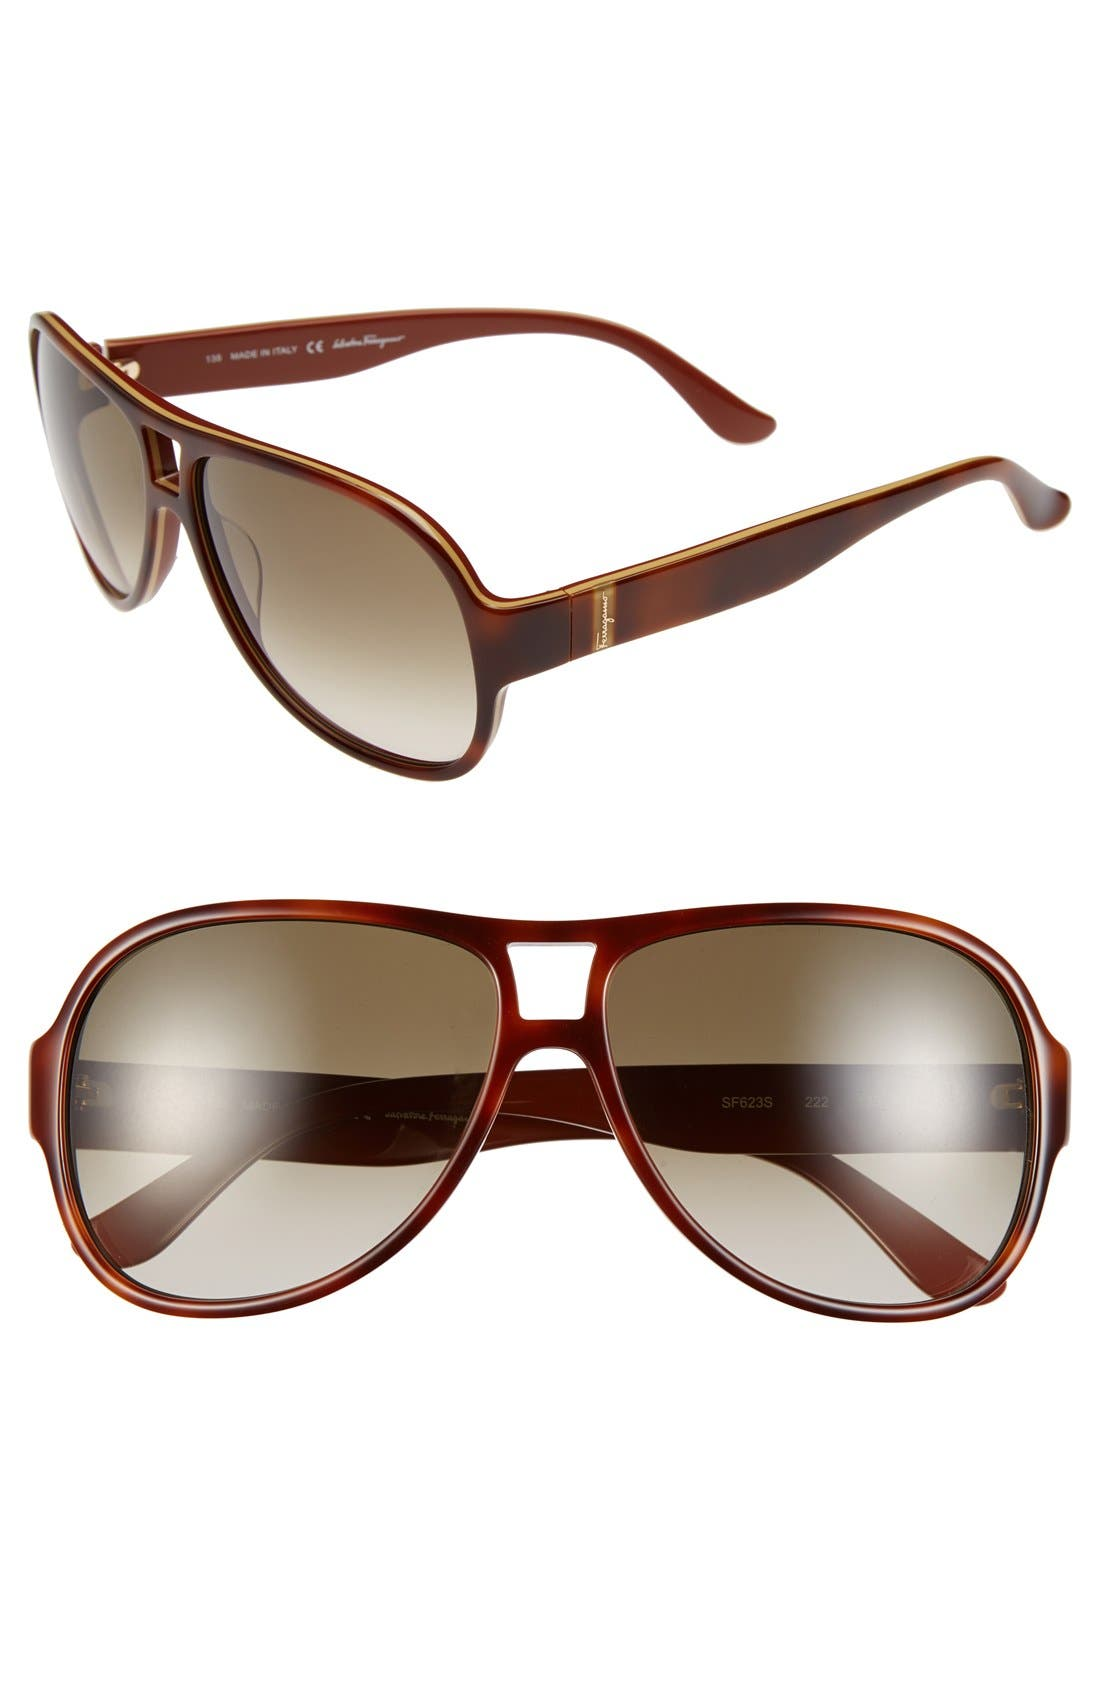 Alternate Image 1 Selected - Salvatore Ferragamo 59mm Aviator Sunglasses